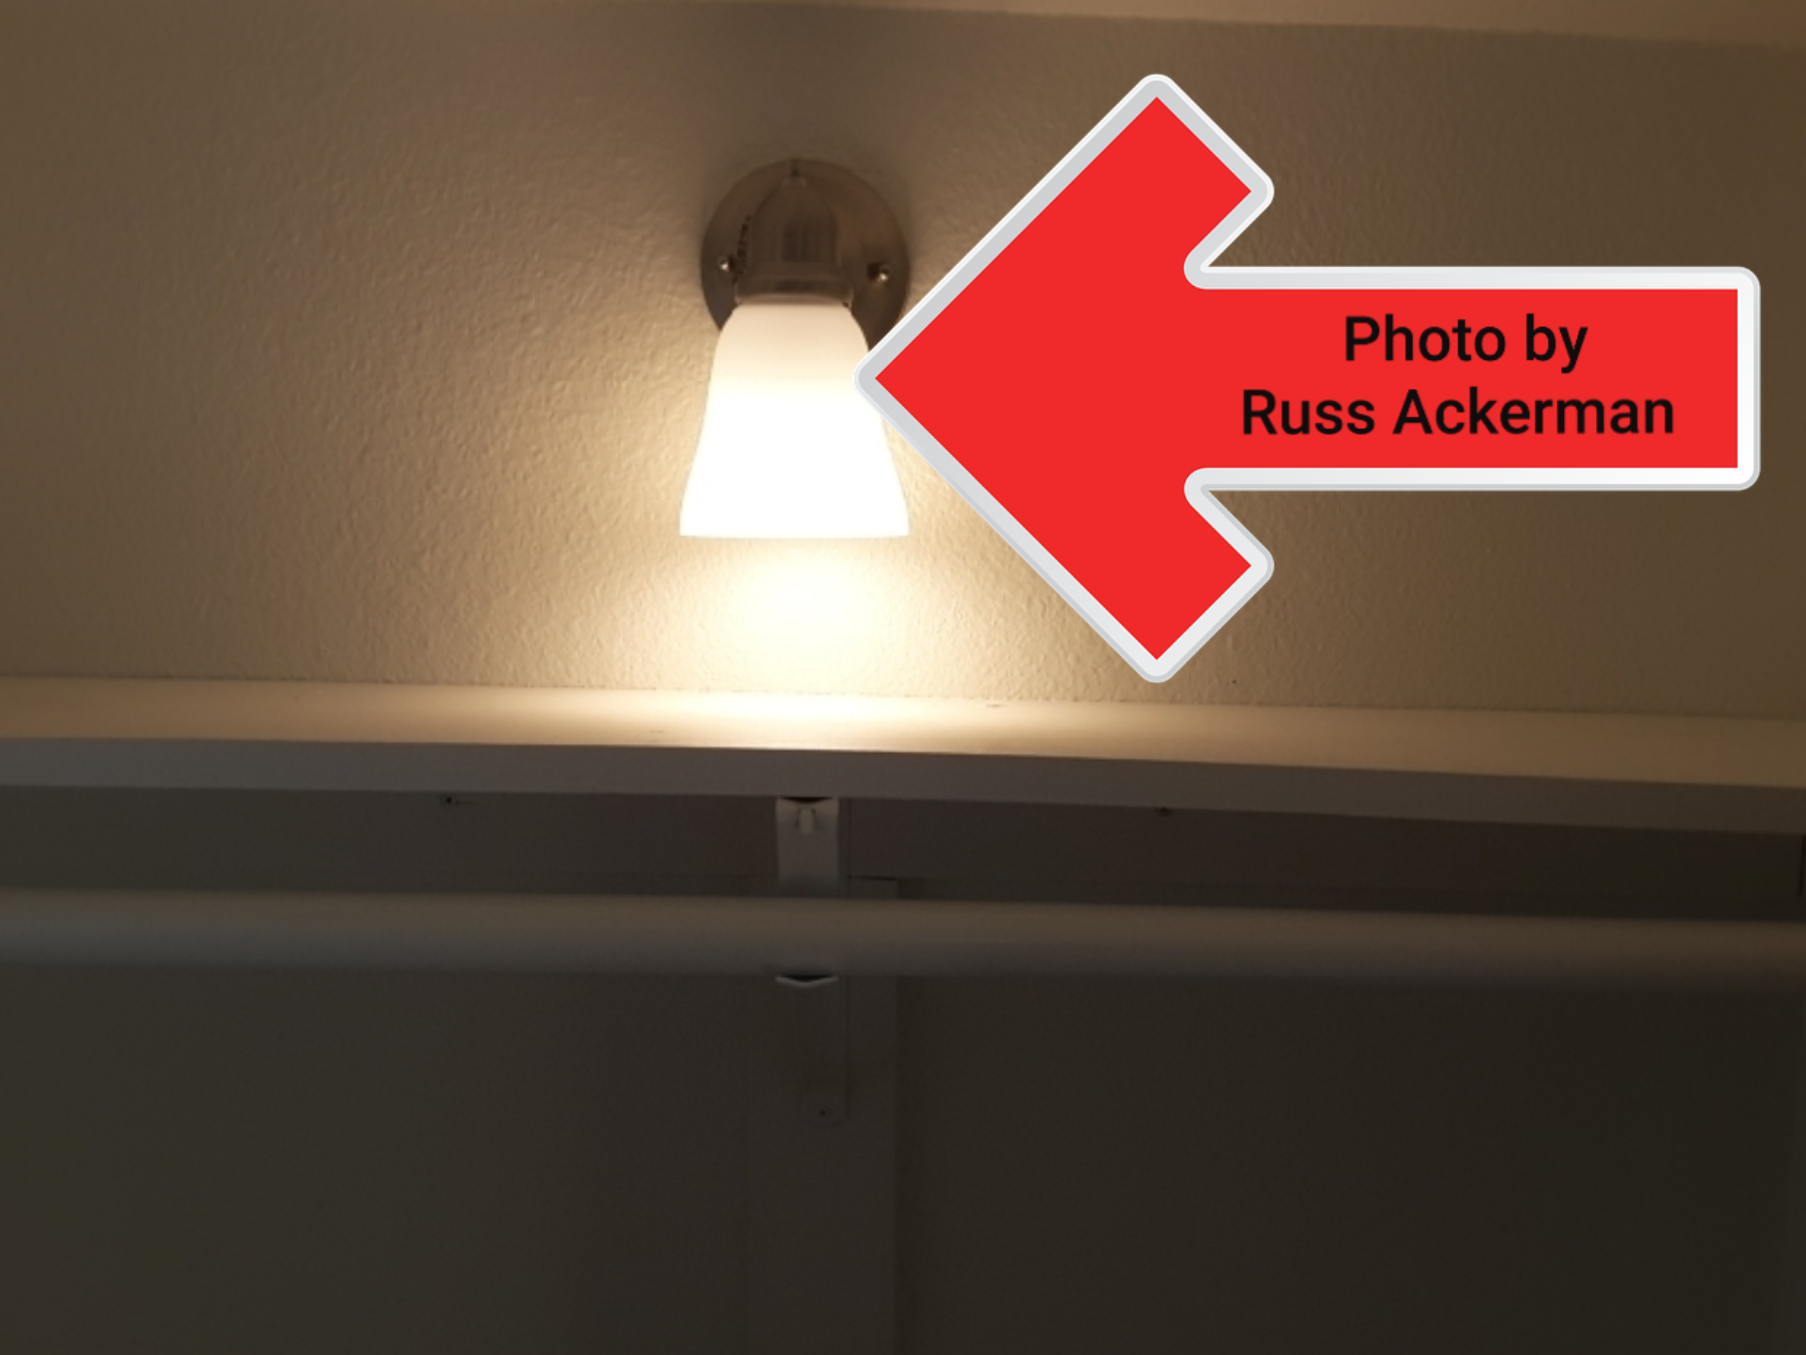 """This closet light fixture was only 3"""" away from the shelving creating a potential fire hazard. Recommend removal or relocation."""